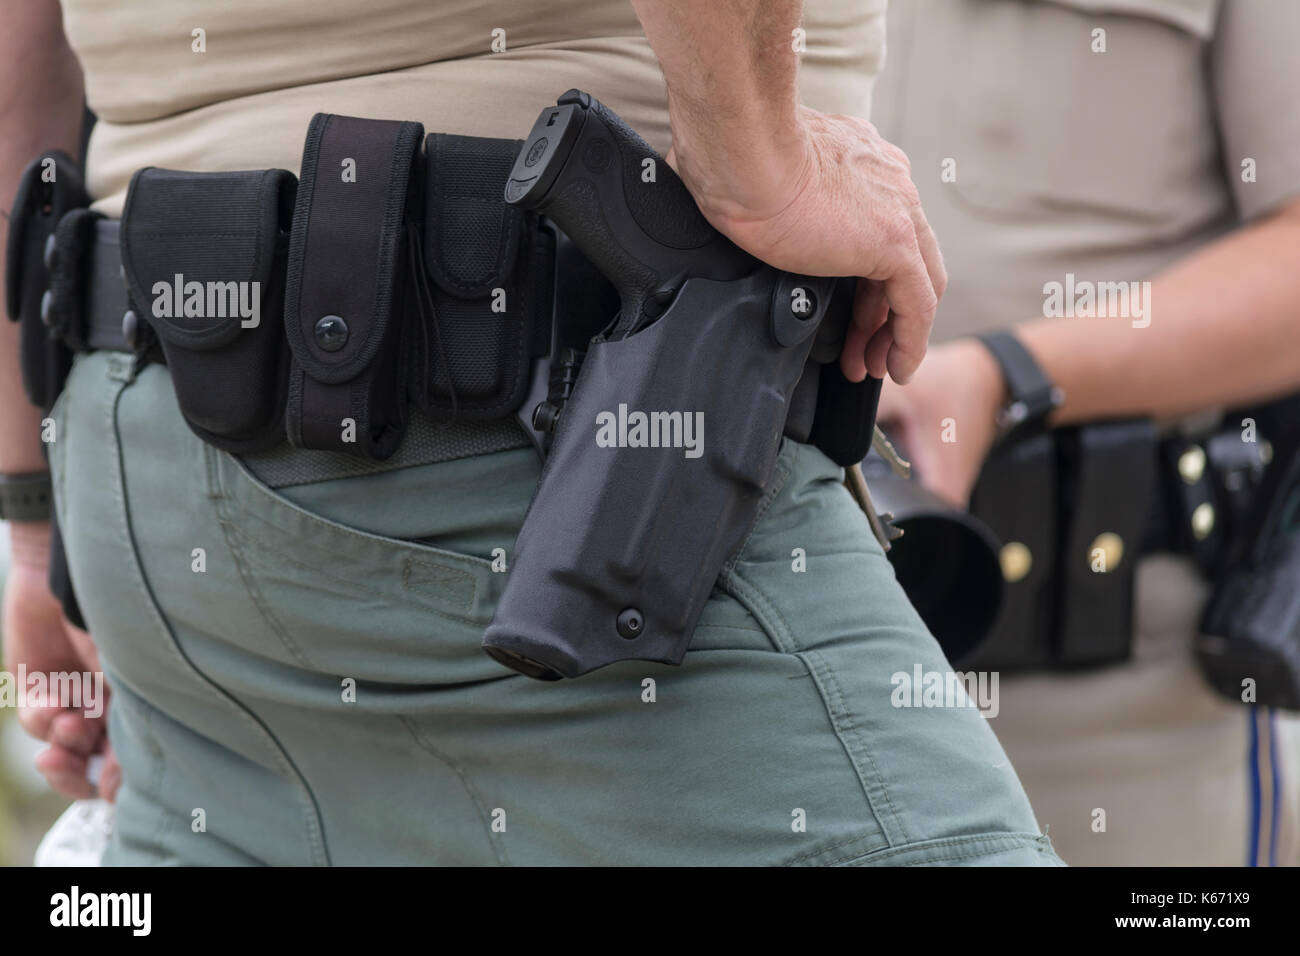 big sale 2076f 7f3cf Police officer's duty belt with weapon, ammo pouches, and handcuff ...